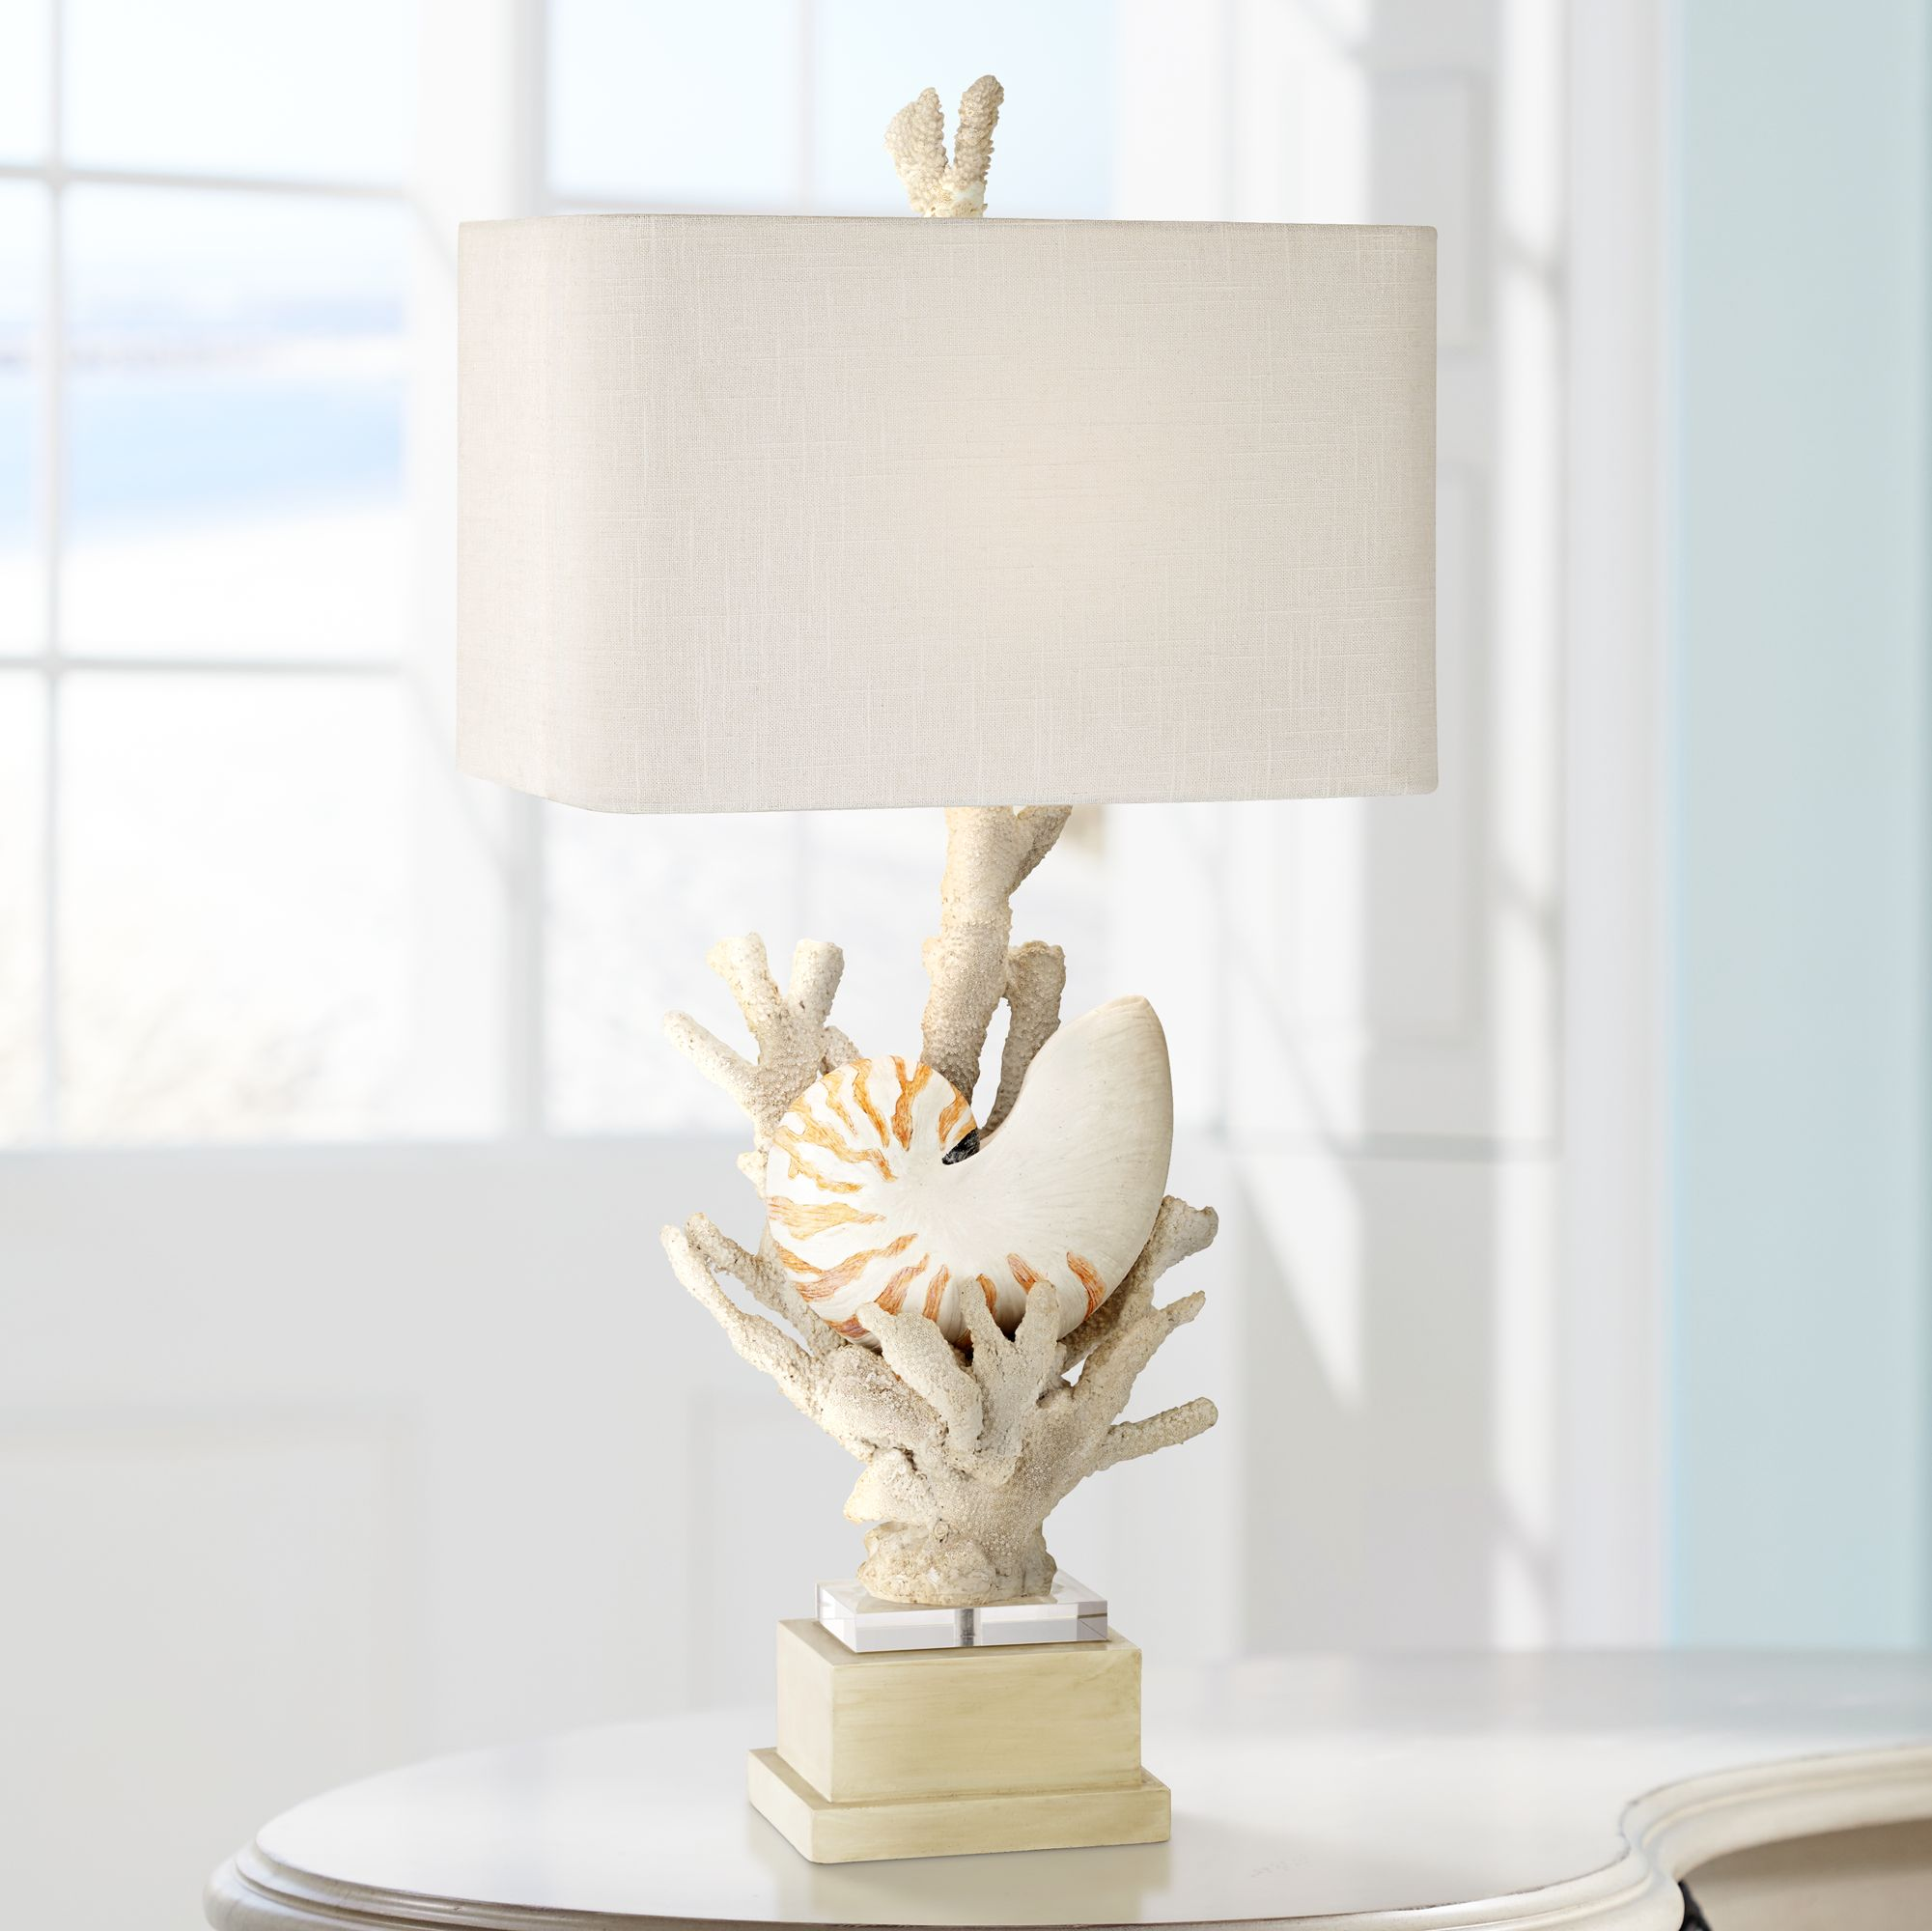 Nautilus Shell And White Coral Table Lamp By Kathy Ireland